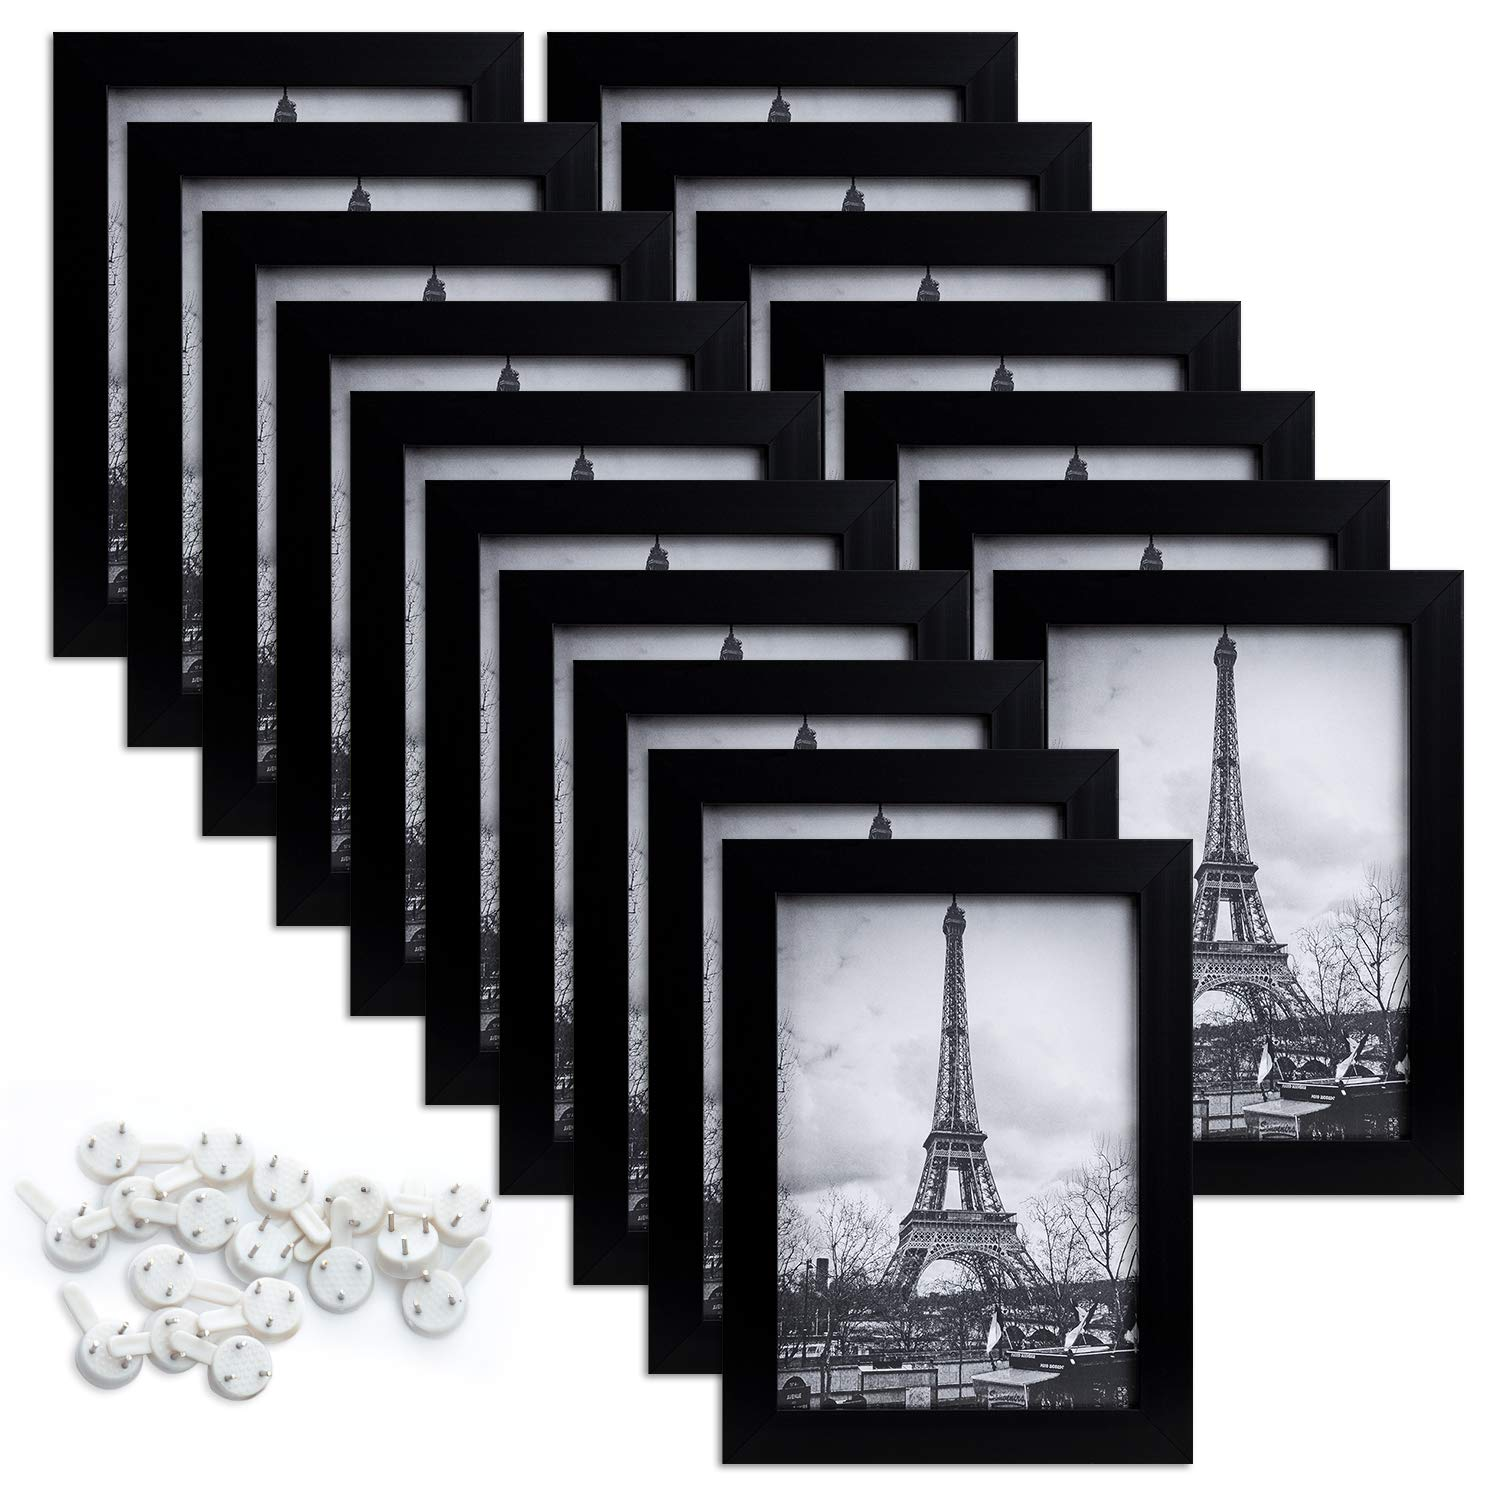 upsimples 5x7 Picture Frame Set of 17,Multi Photo Frames Collage for Wall or Tabletop Display,Black by upsimples